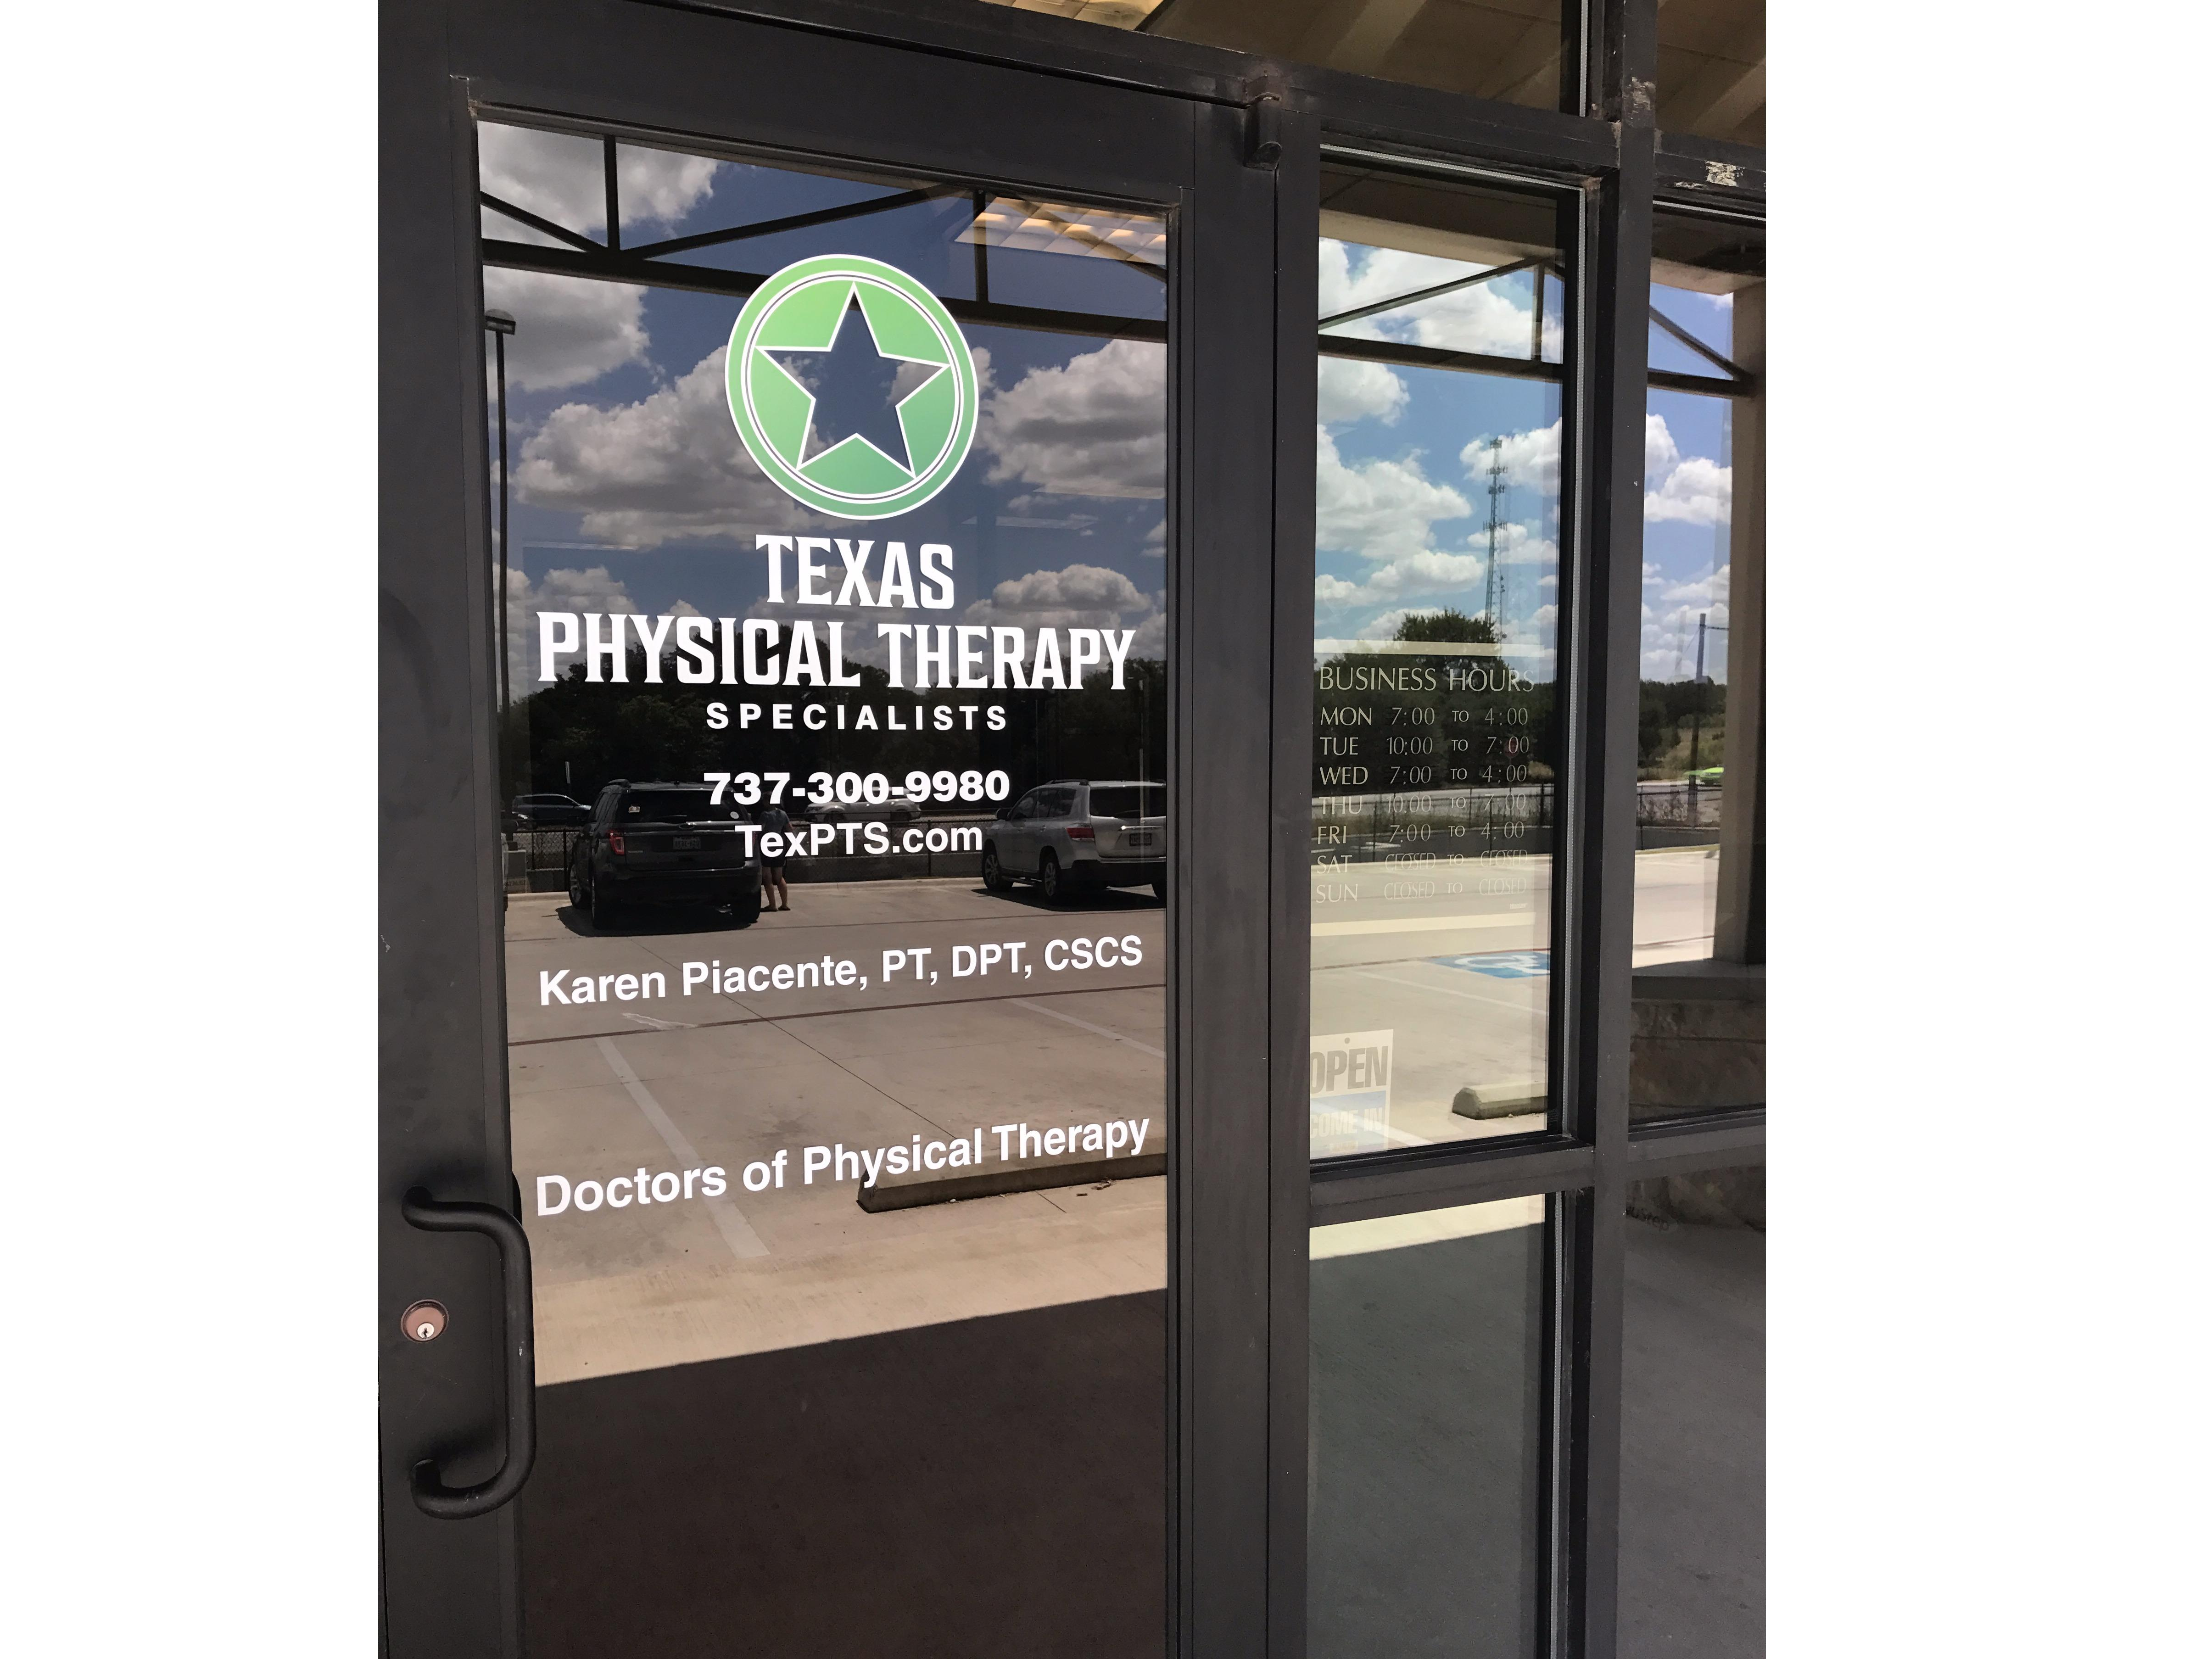 Texas Physical Therapy Specialists image 1